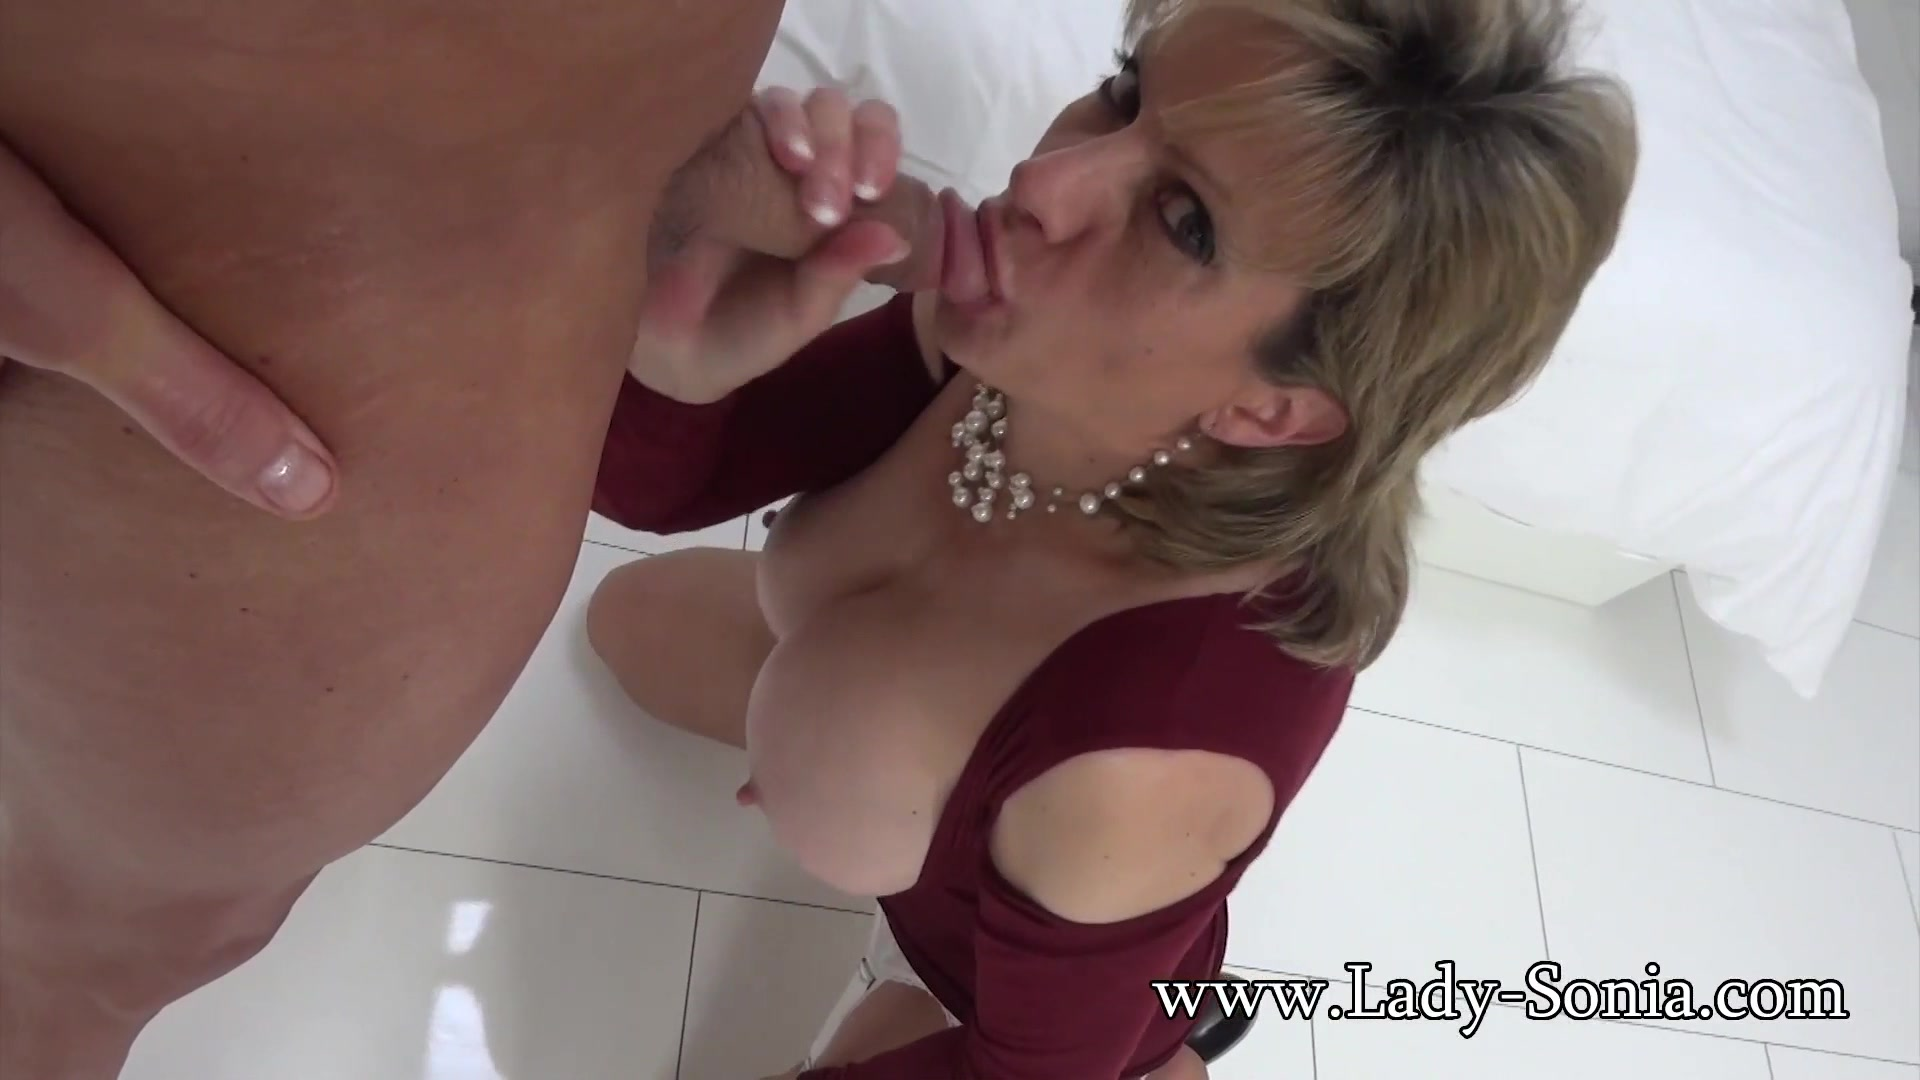 Lady Sonia Mature Slut Oiled Up And Sucking Cock Tailor Fuck The Girl